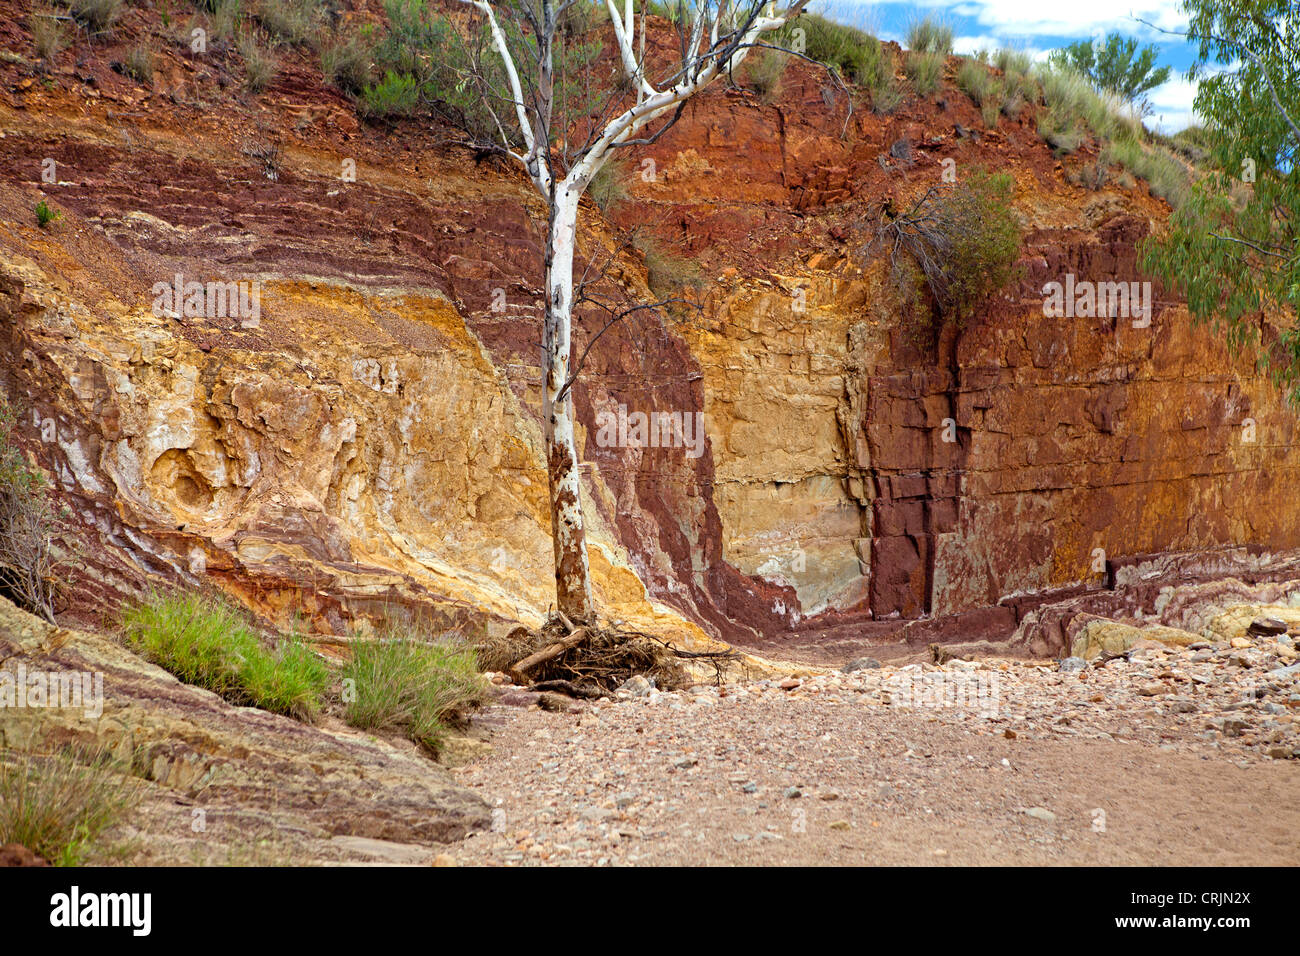 The coloured walls of the Ochre Pits in the West MacDonnell Ranges - Stock Image